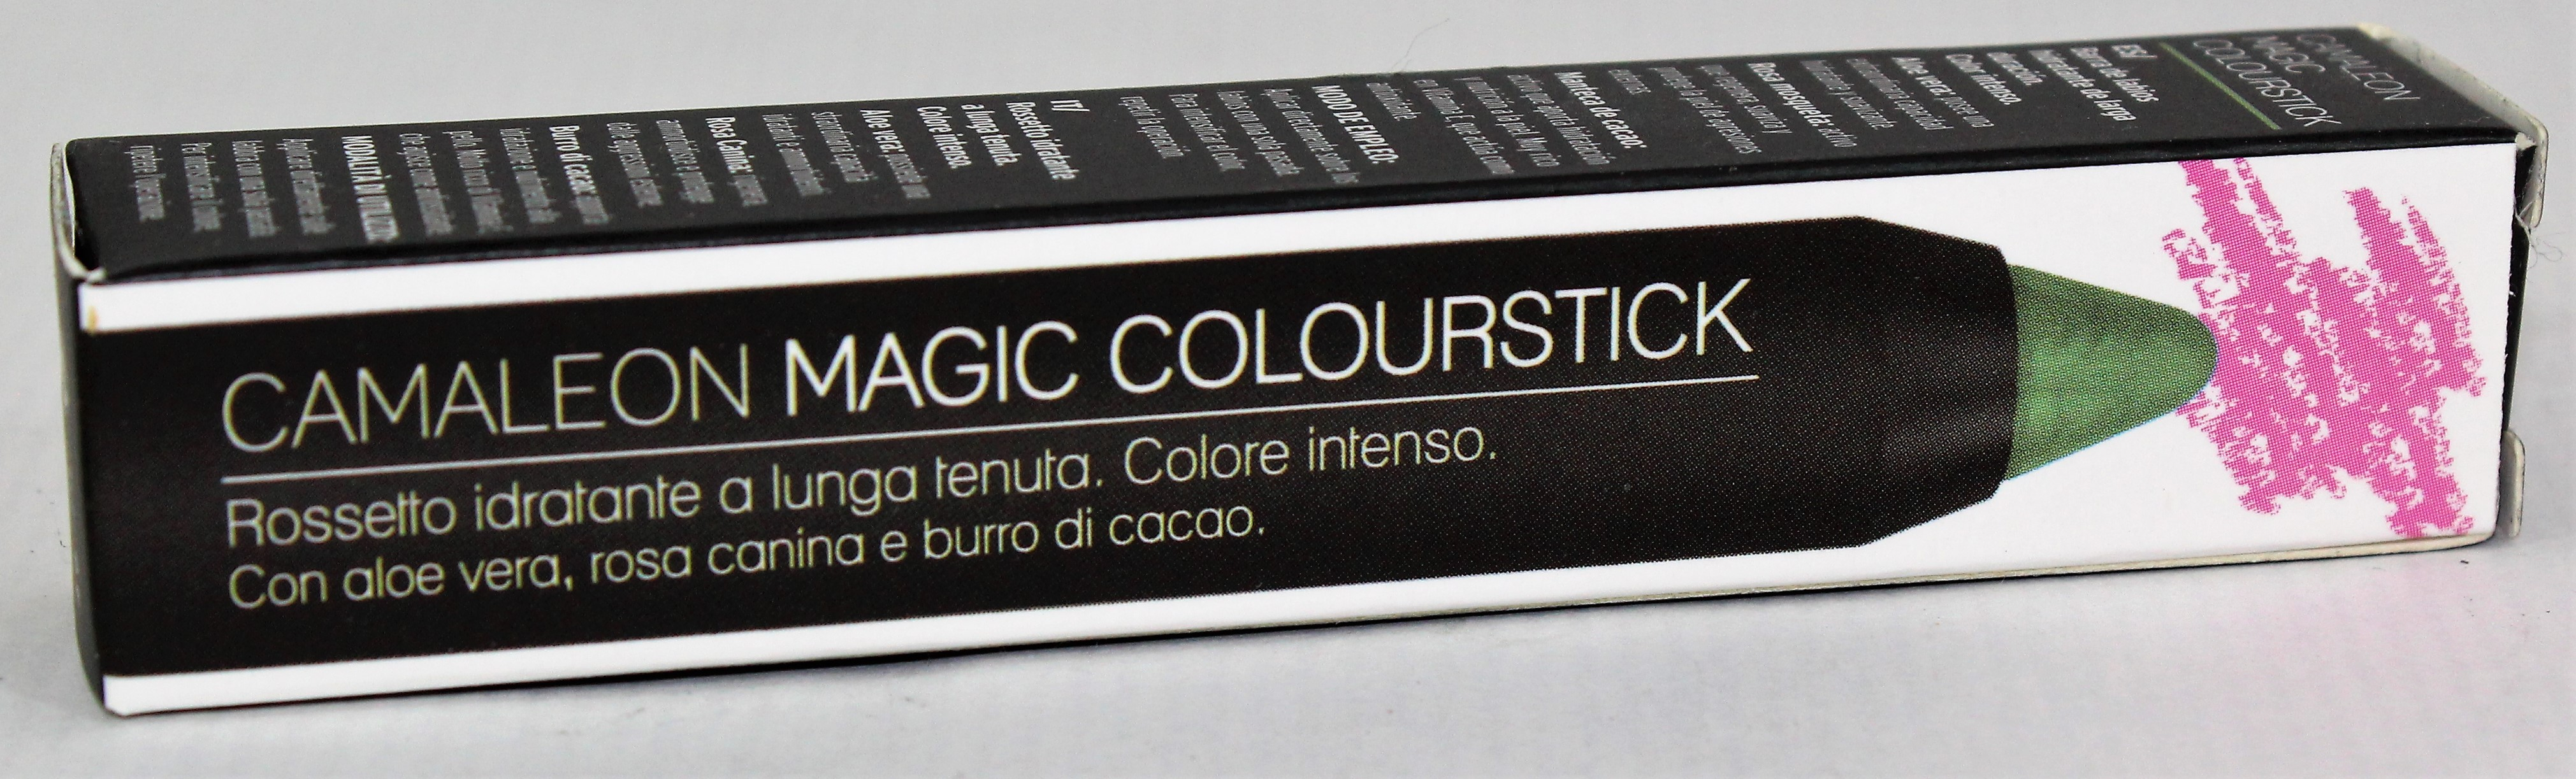 CAMALEON MAGIC PERMANENTE LABIAL VERDE 4 G